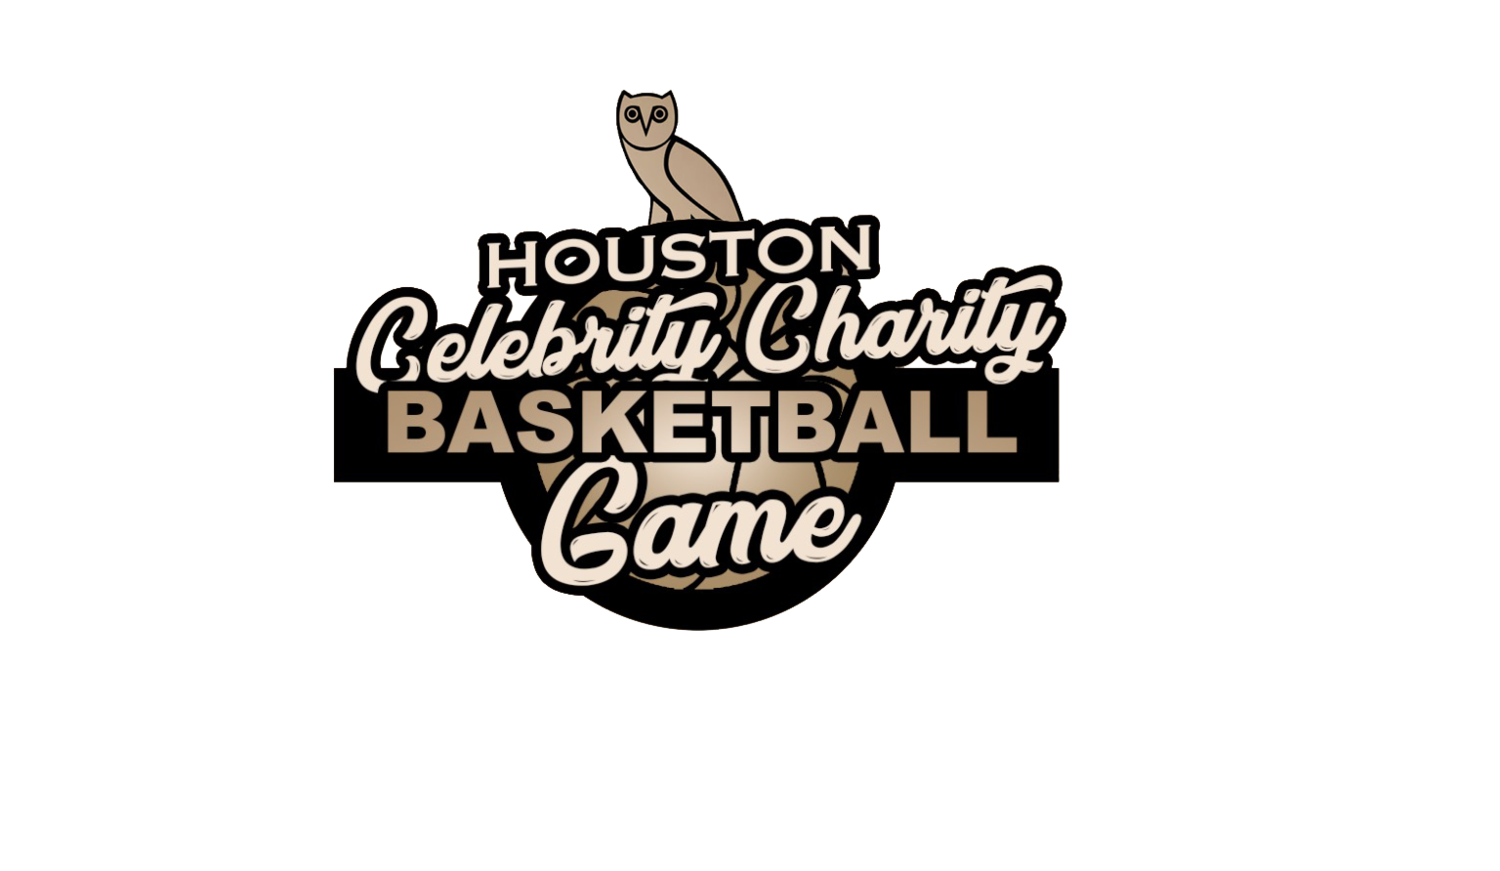 Houston Celebrity Charity BBall Game